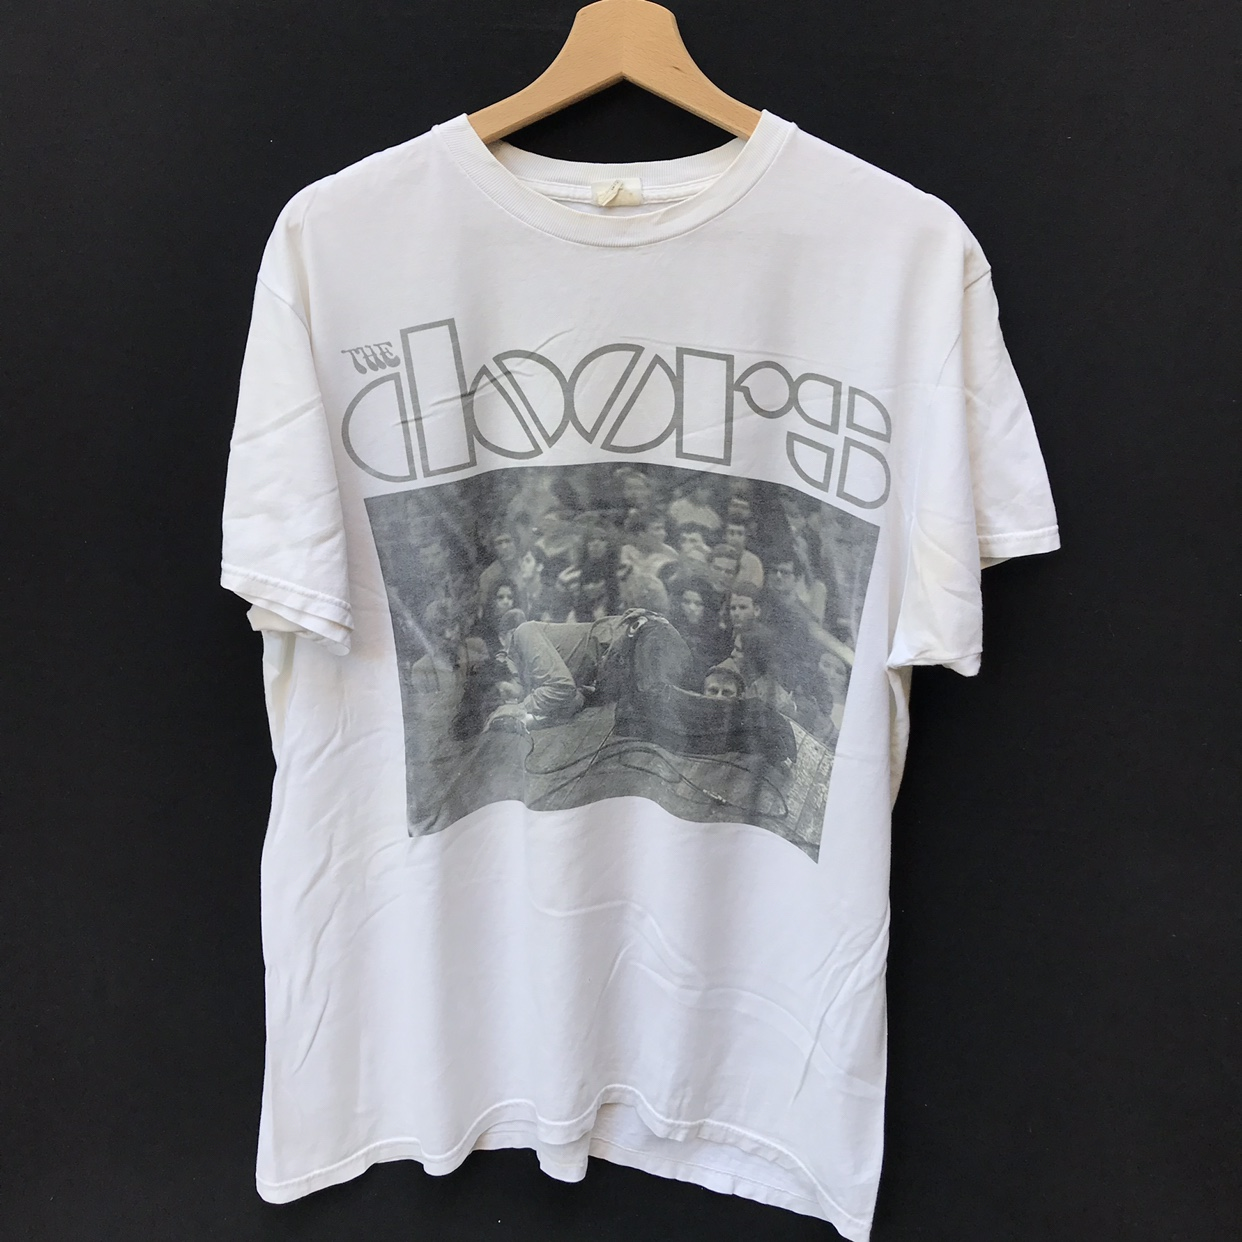 Early 2000s doors shirt has some flaws shown due to    - Depop